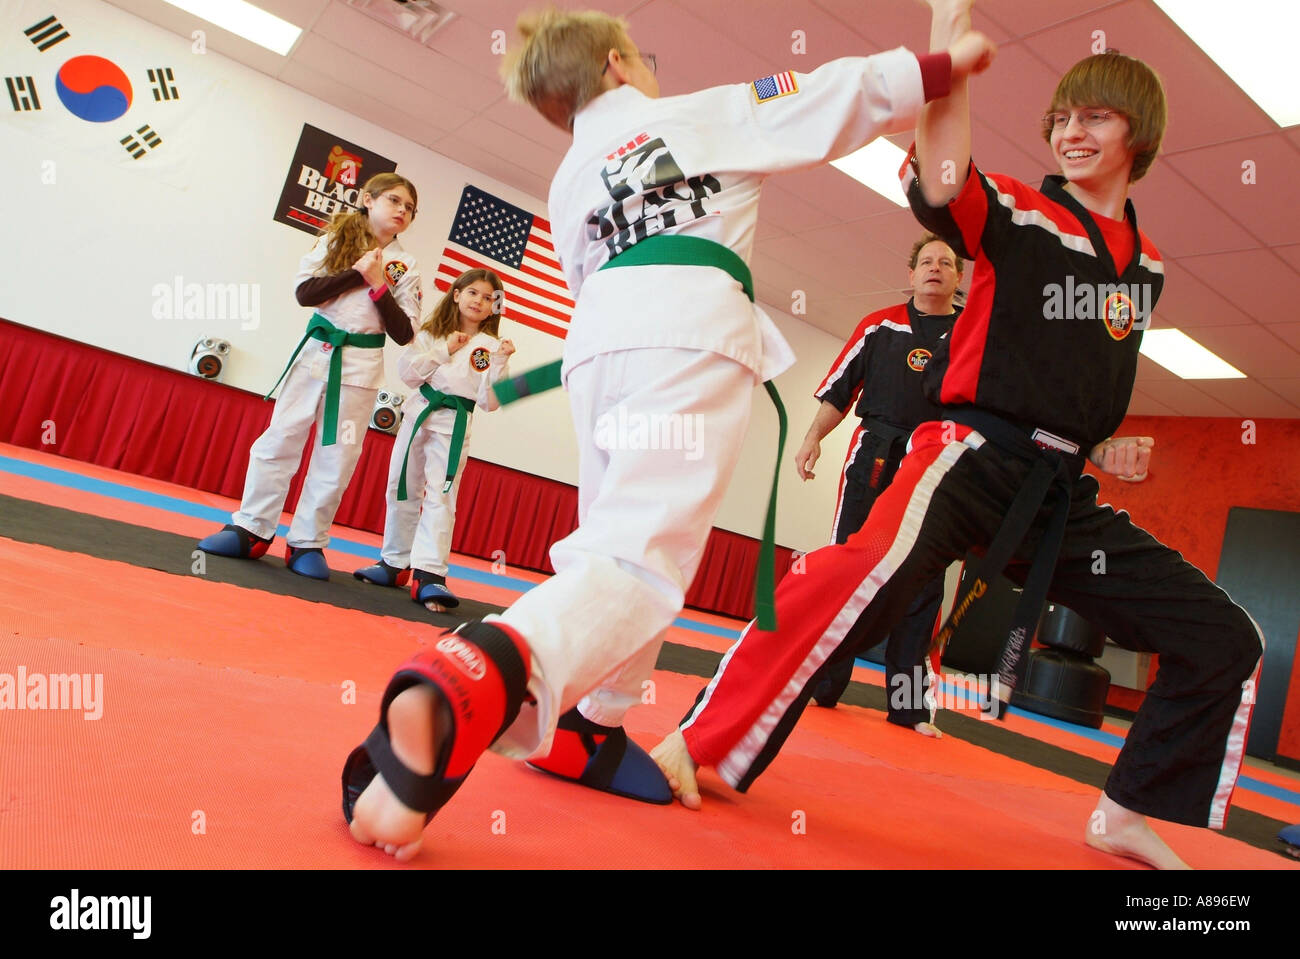 usa-a-martial-arts-tae-kwon-do-class-at-the-black-belt-academy-dominion-A896EW.jpg